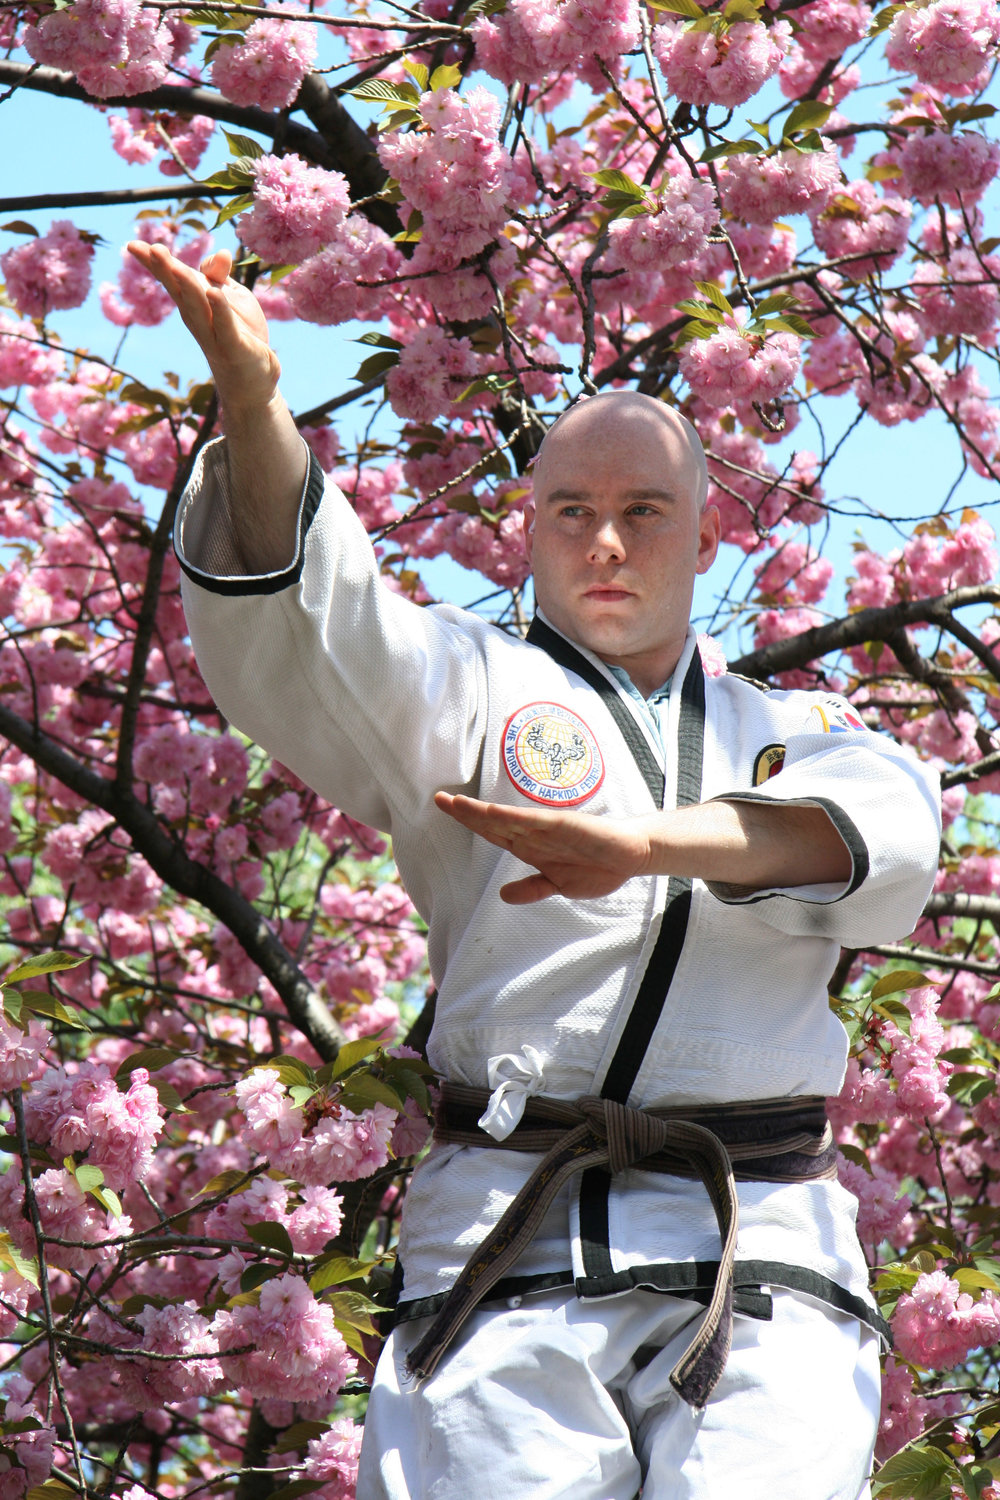 Chungsanim Master Jonathan Waks  received his 1st Dan Black Belt in HapKiDo in 2001, a 2nd Dan in 2004, 3rd Dan in 2010 and 4th in 2015. In addition, he also holds a First Dan – 2008 in  VSK Jujitsu  - Soke John Davis. Jonathan has over 1500 teaching hours, and has led specialty seminars in weapons, sparring, falling, philosophy, meditation and teacher training. He works as an event and marketing producer in Manhattan.